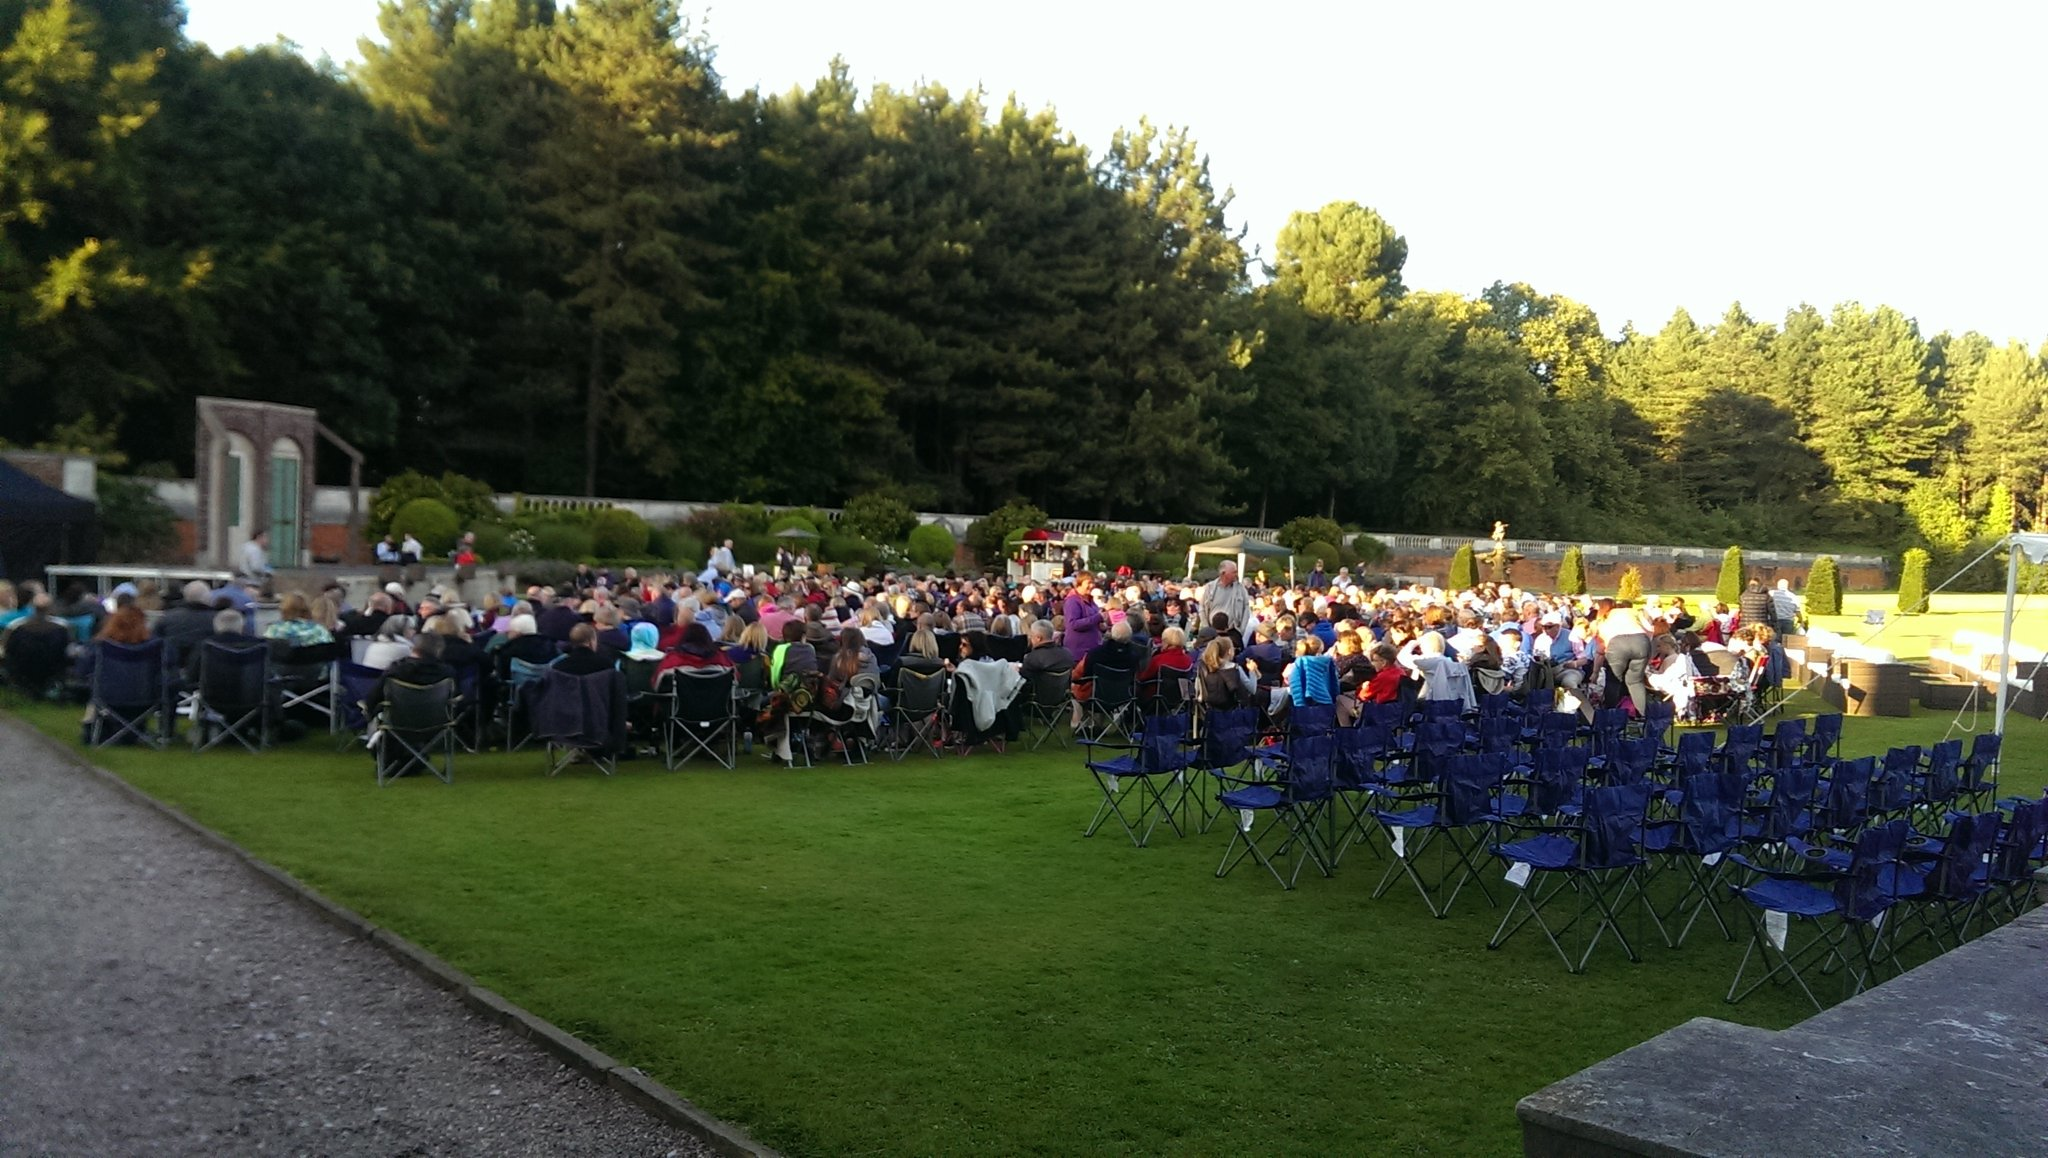 Packed audience on the lawn @KnowsleyHall ready for the performance to begin! @TLCMuk https://t.co/jbHFEKEb4A